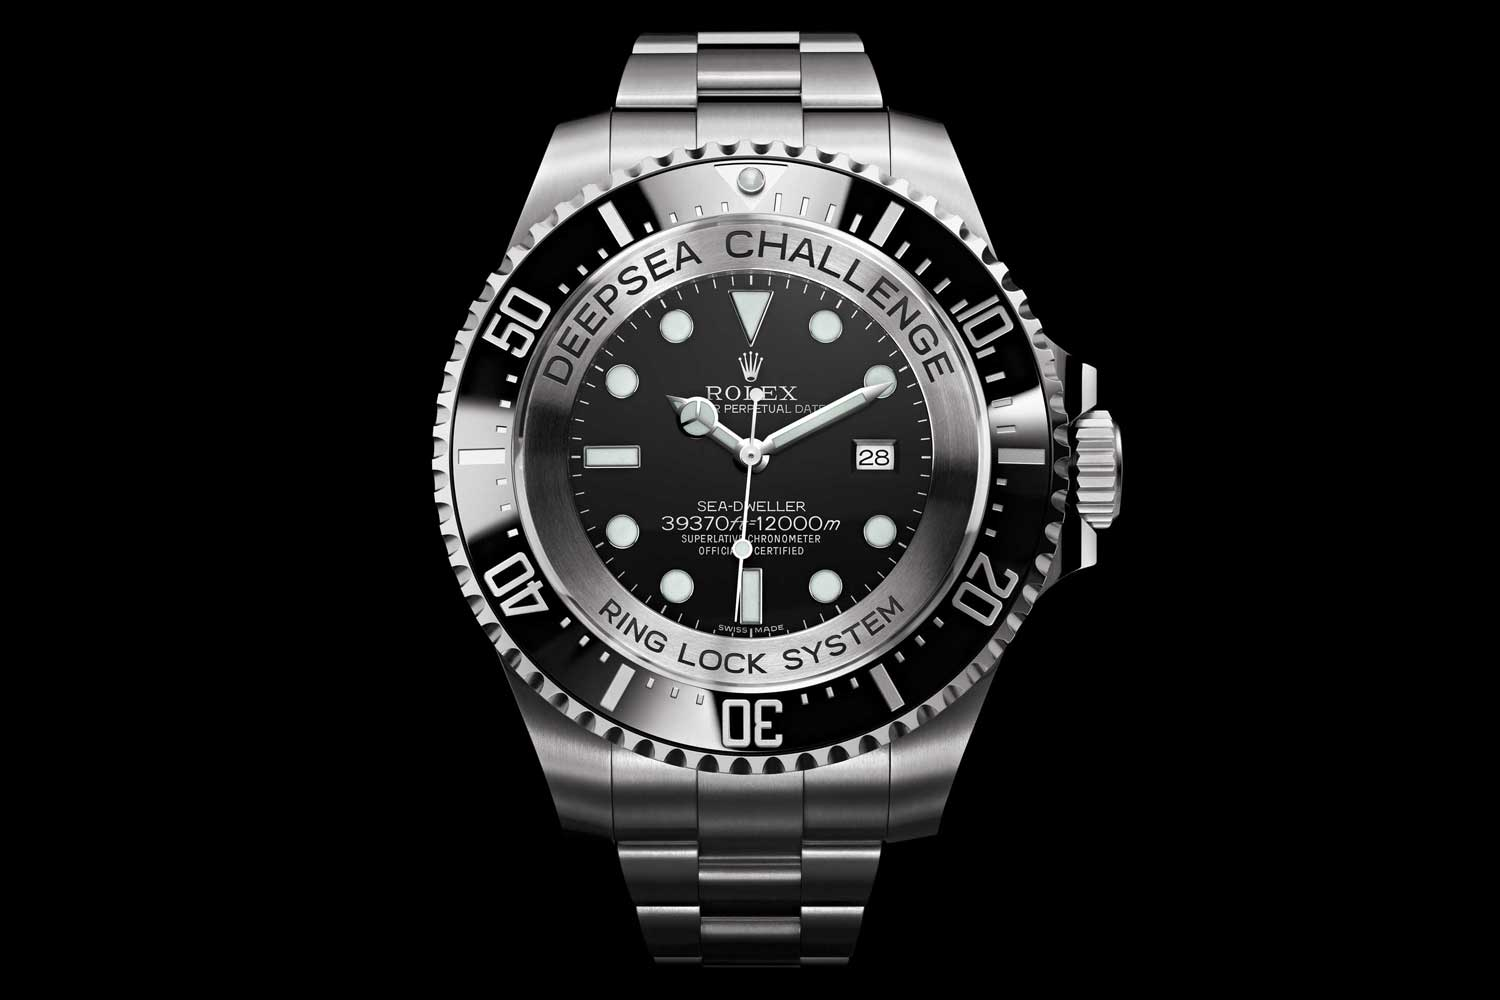 Rolex Deepsea Challenge from the 2012 expedition